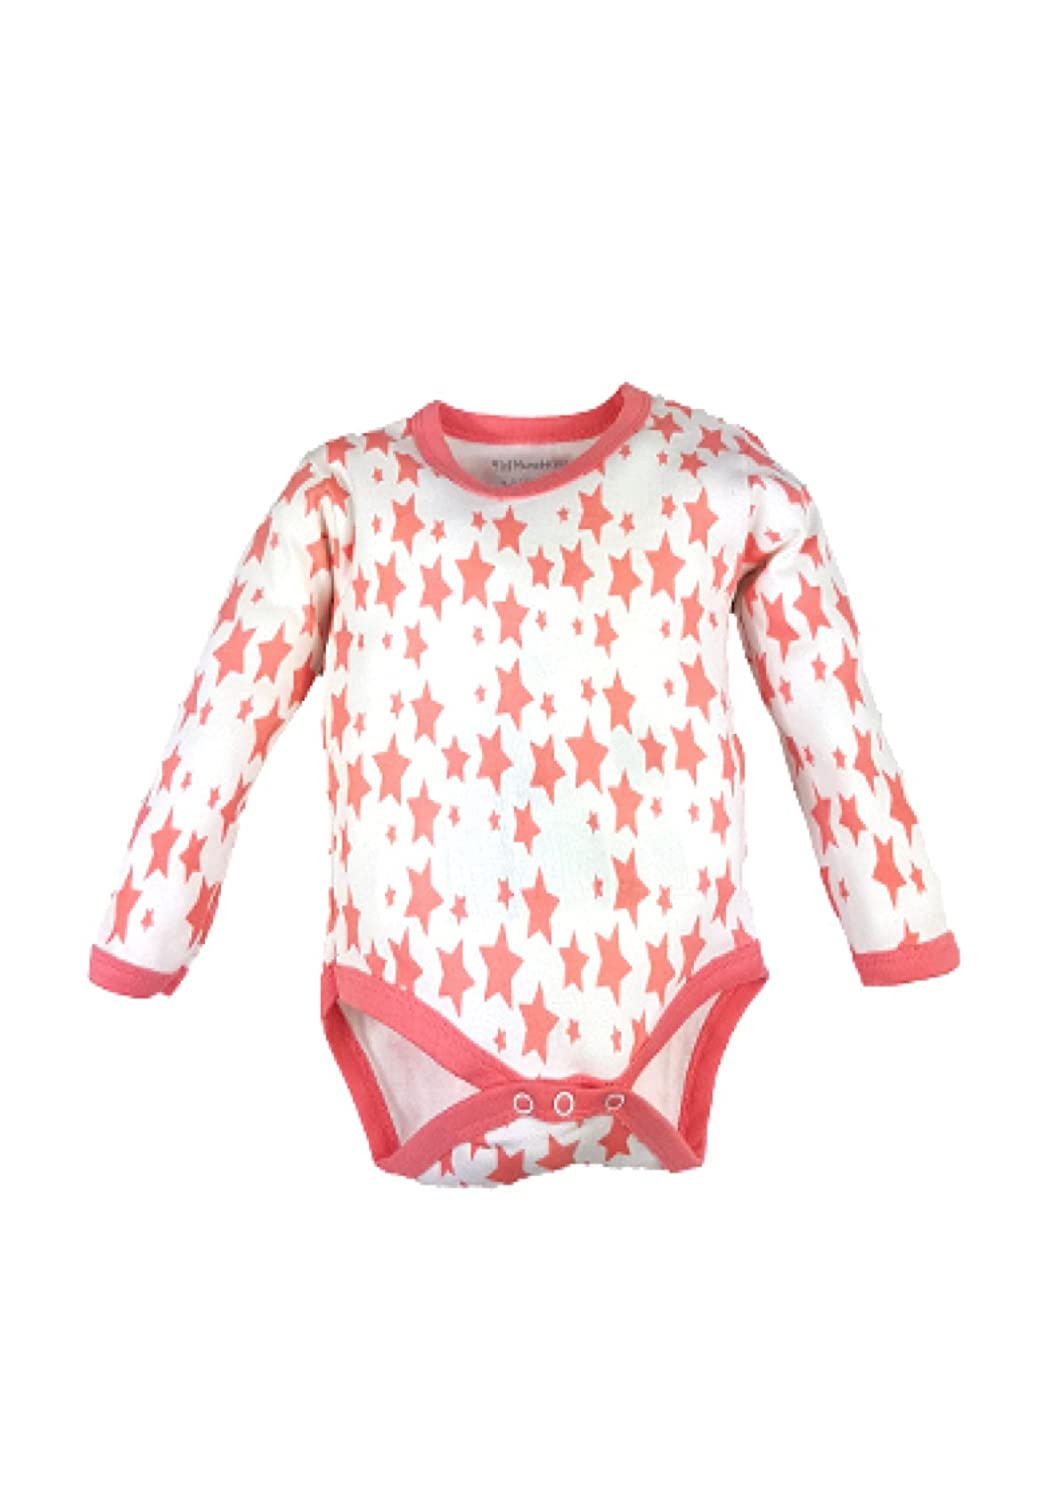 Mini boo 6 Rompers Pink Star Long Sleeve Body Vests Rompers